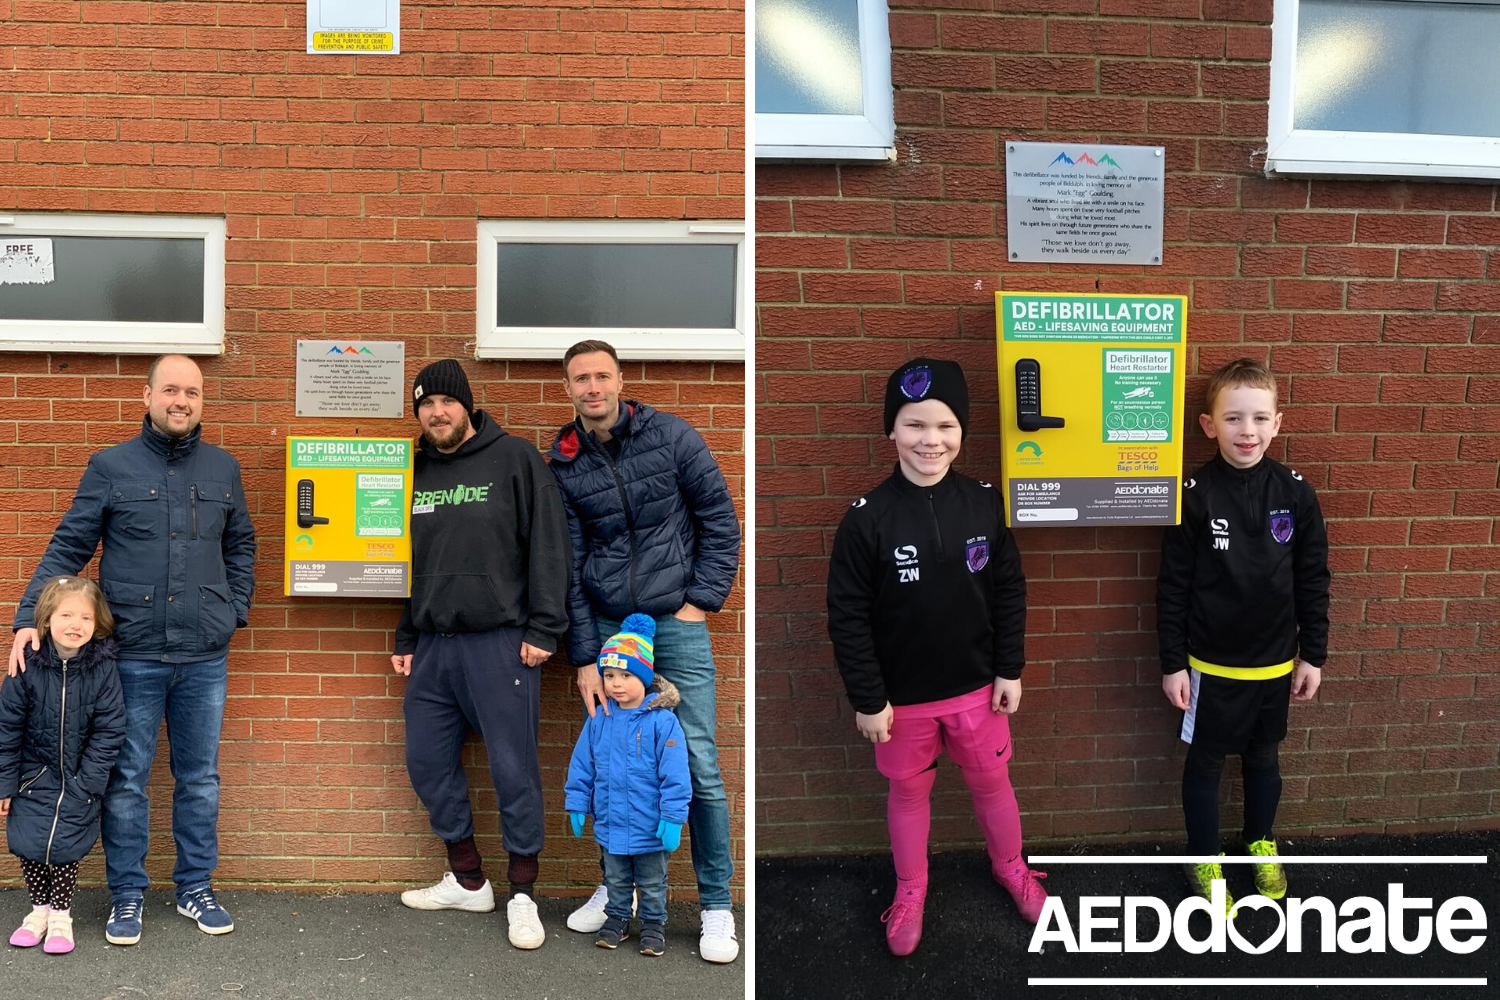 New defibrillator cabinet for football club due to vandalism